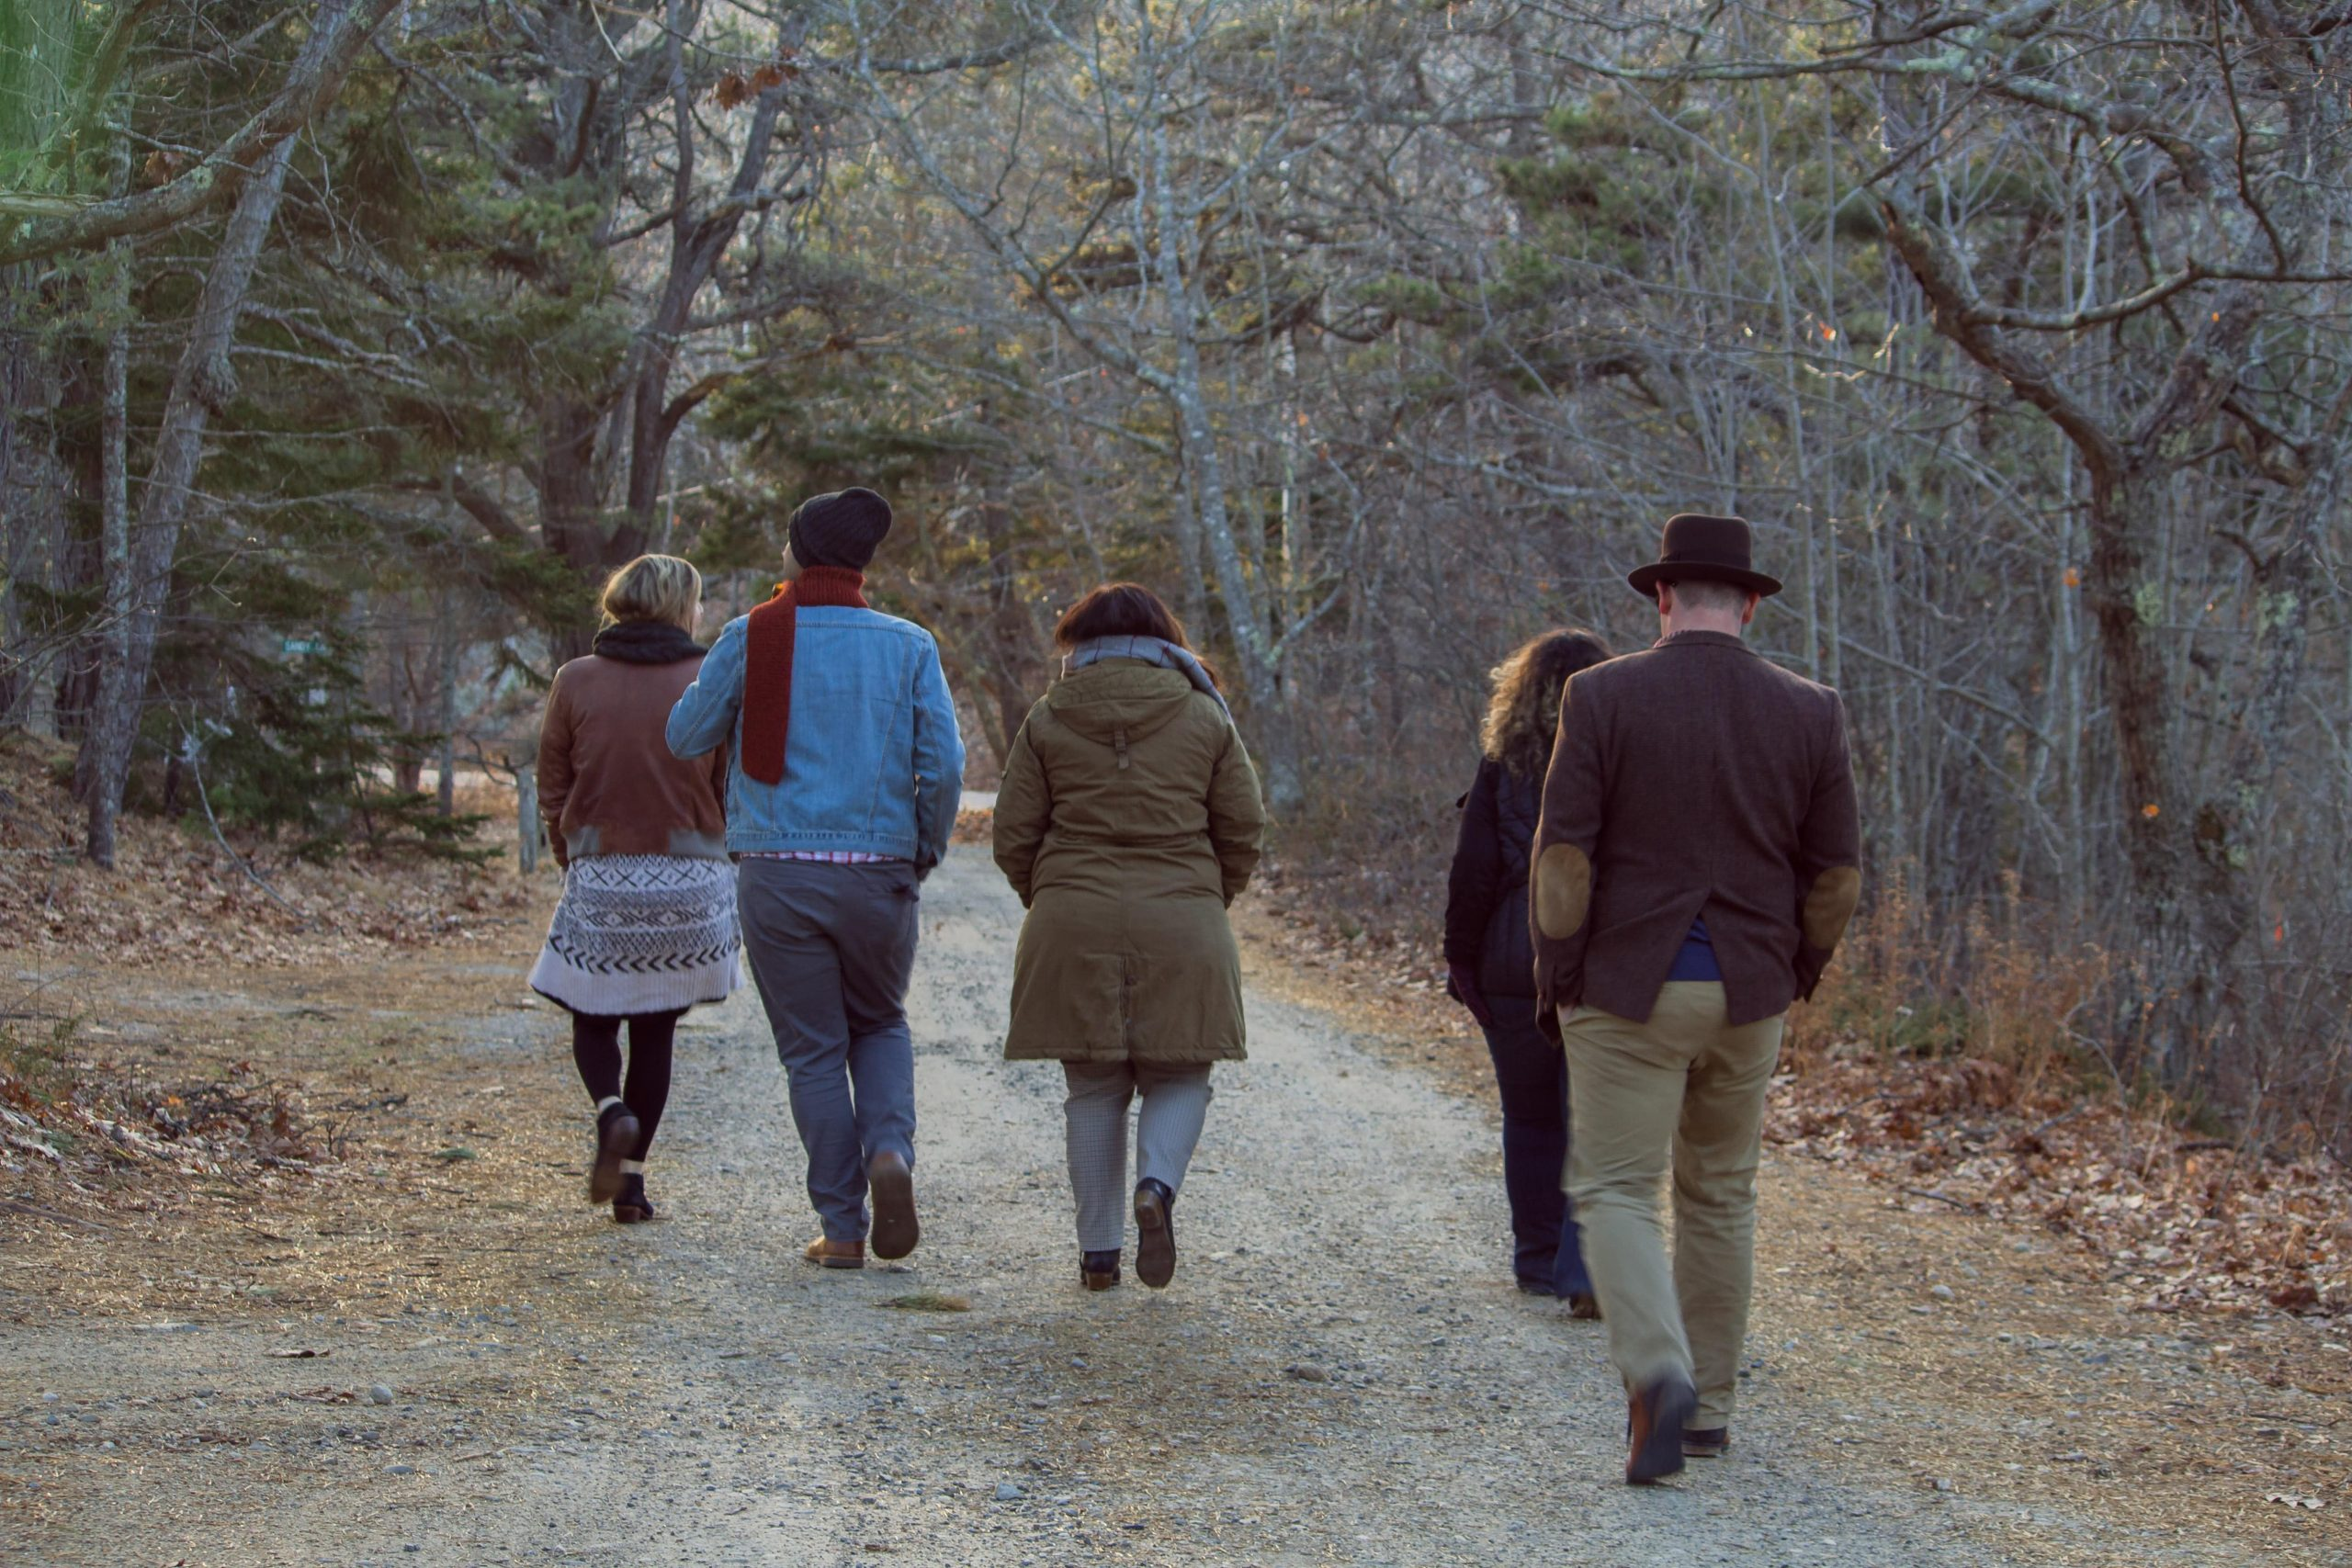 Image of the back of a group of five people, walking through the woods in winter.